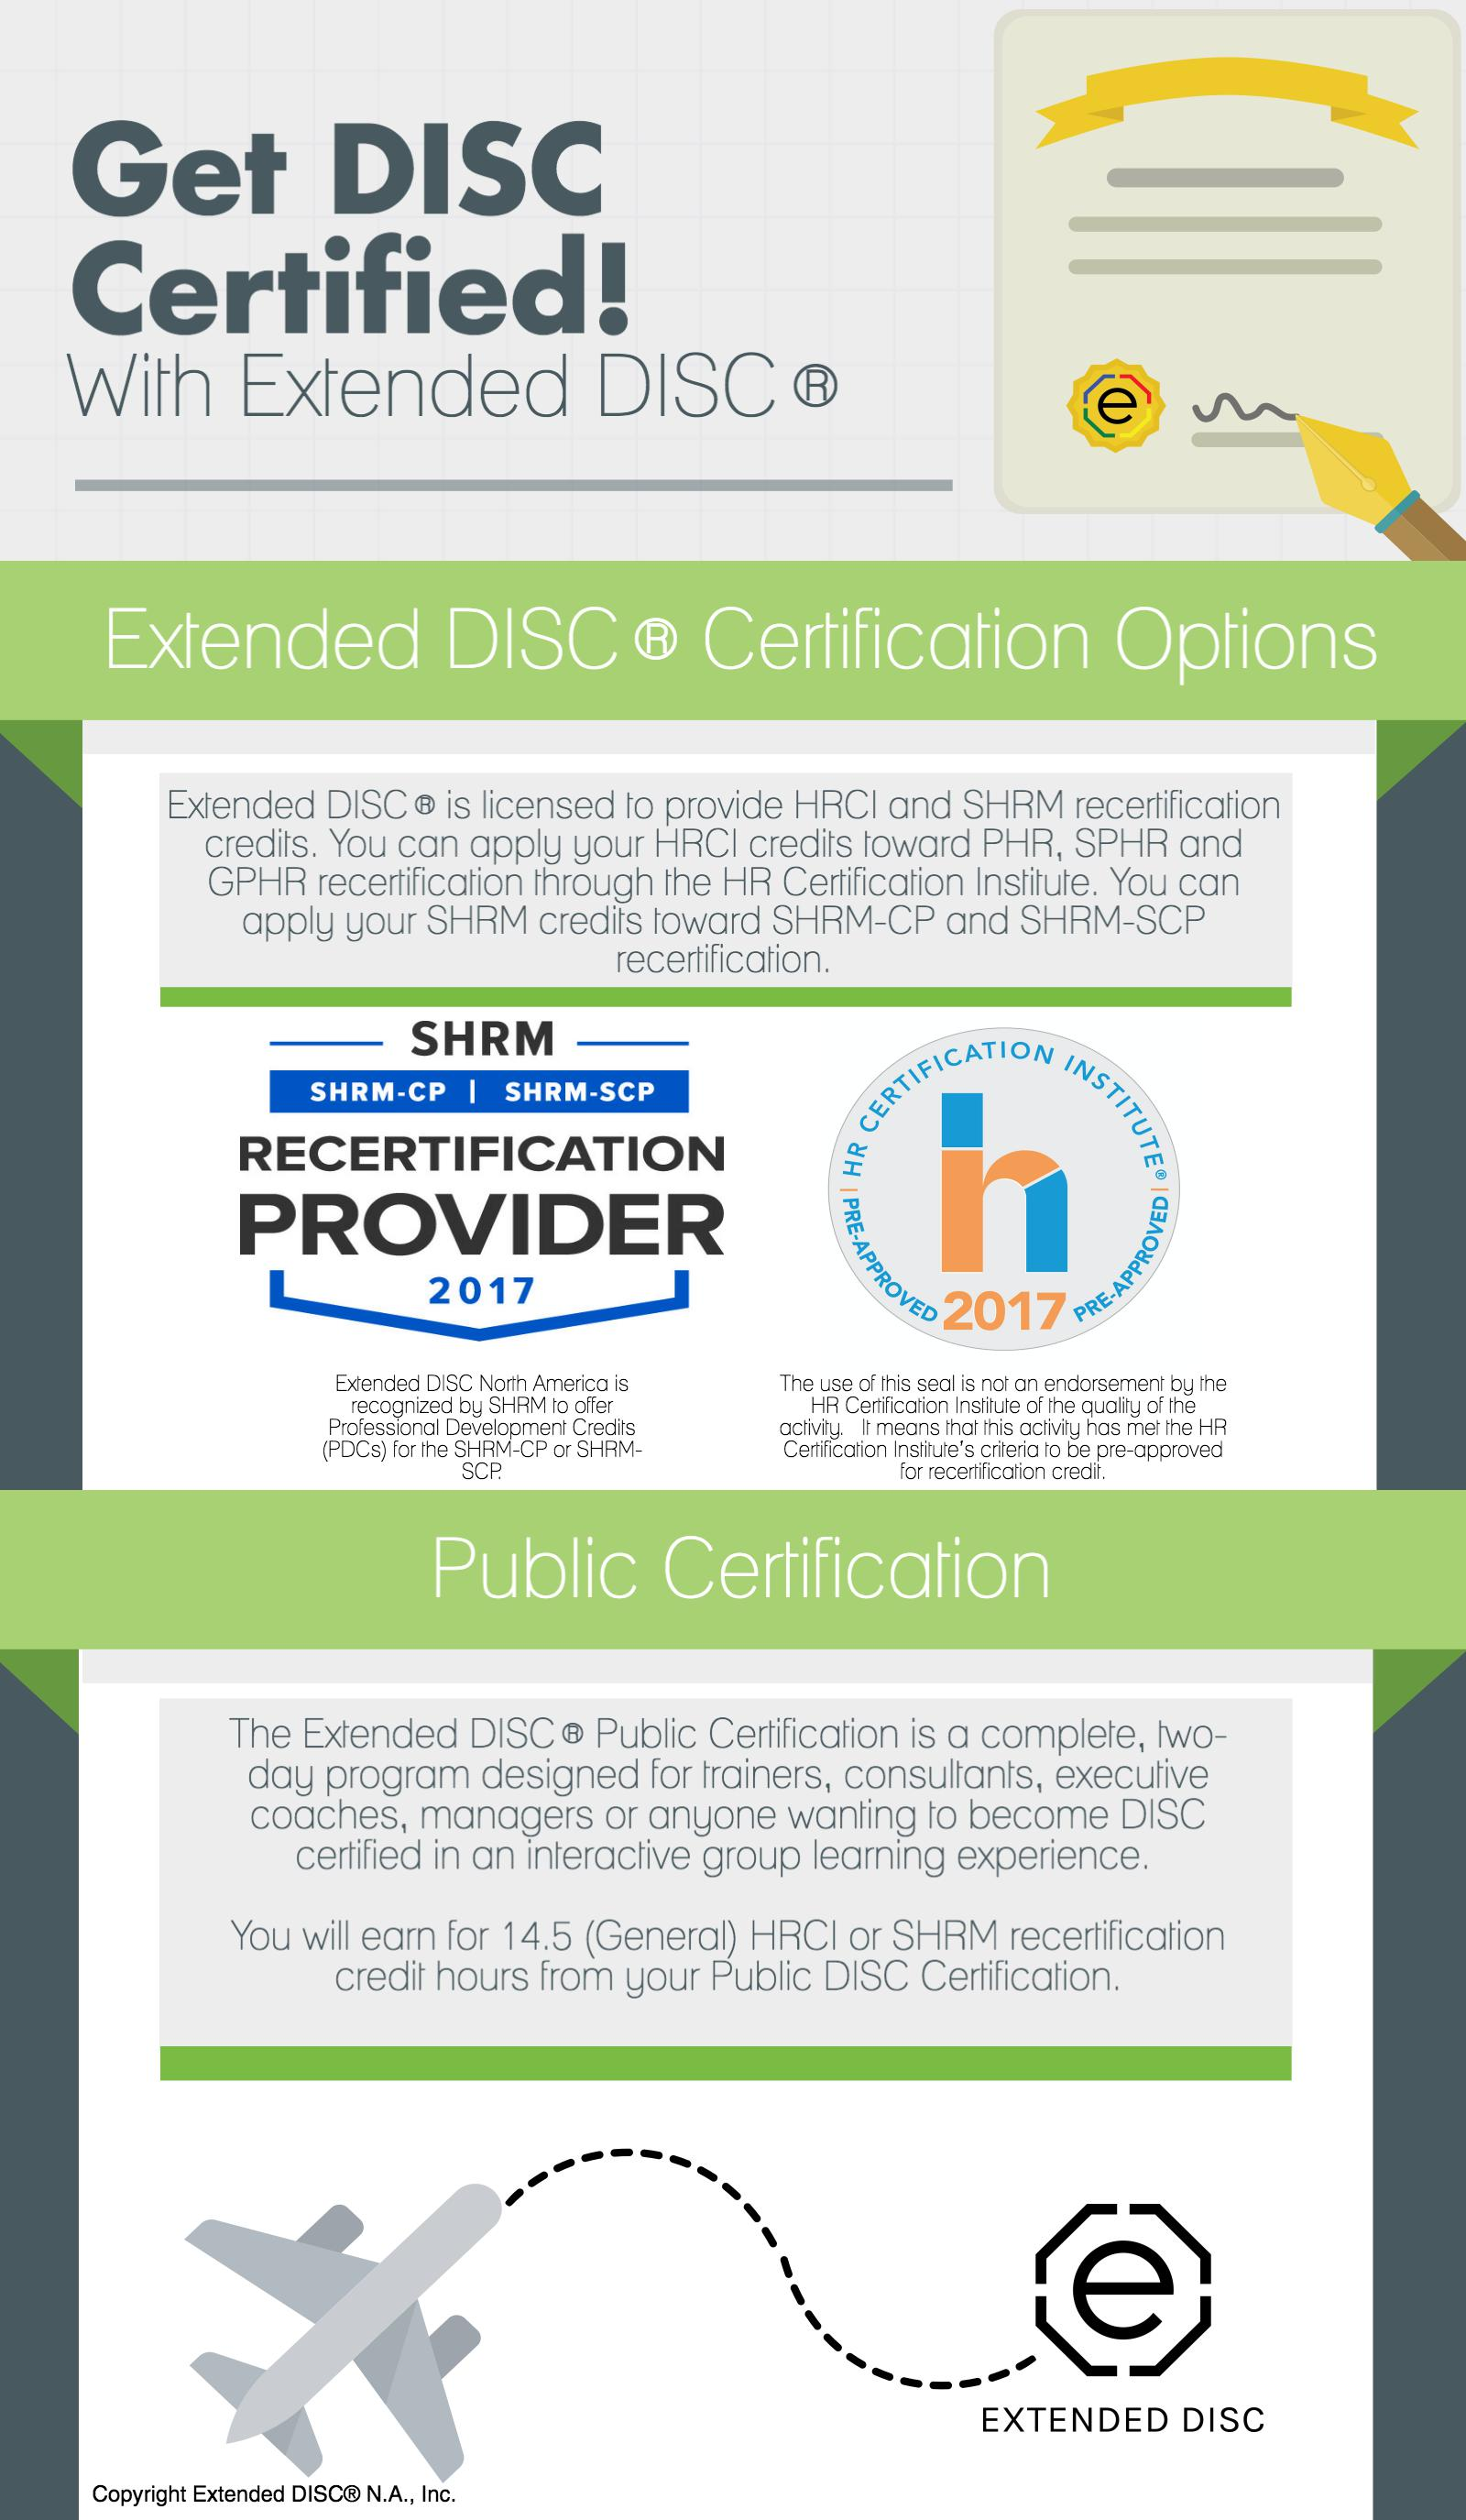 Get Disc Certified With Extended Disc Upcoming Opportunities